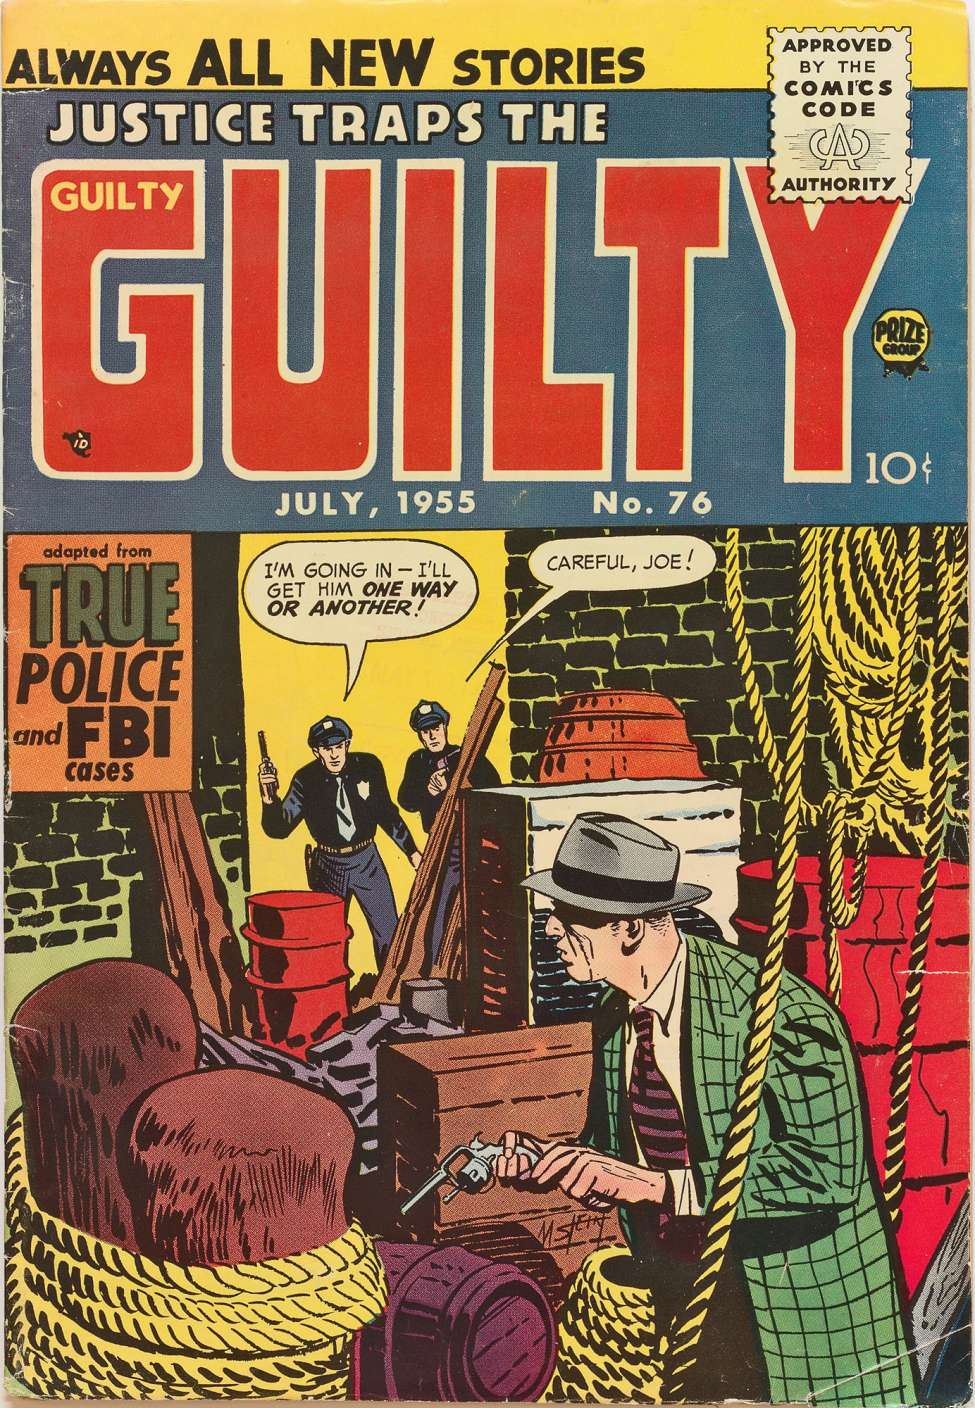 Comic Book Cover For Justice Traps the Guilty v8 10 (76)